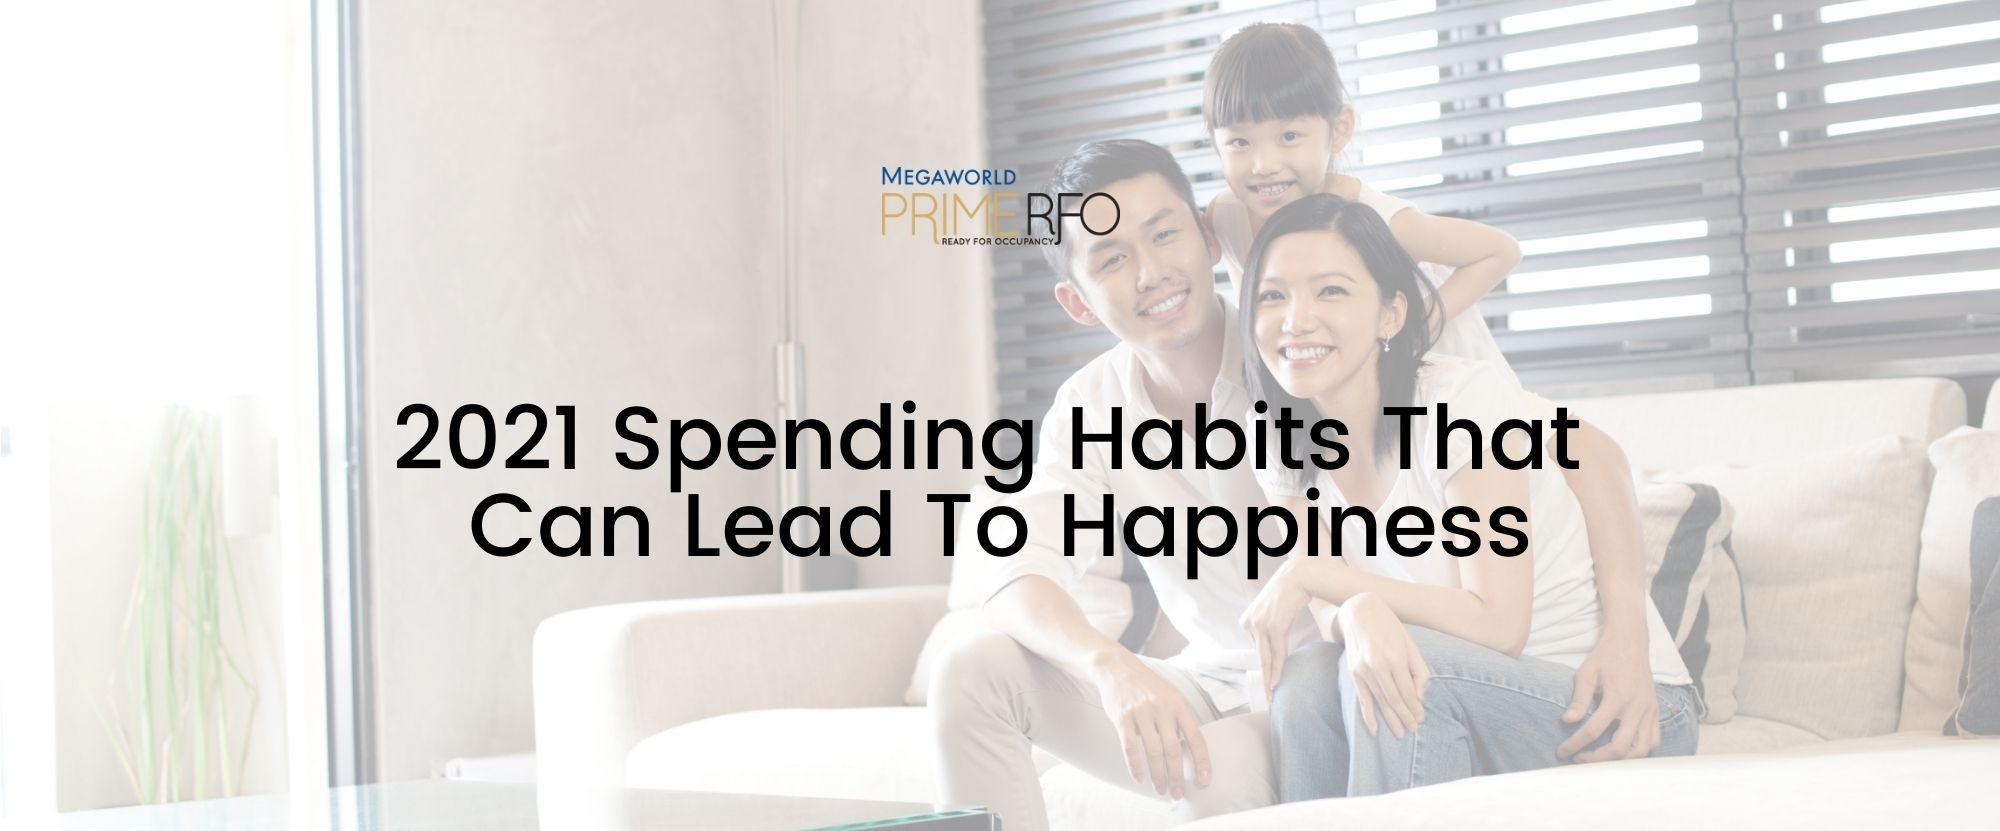 2021 Spending Habits That Can Lead To Happiness